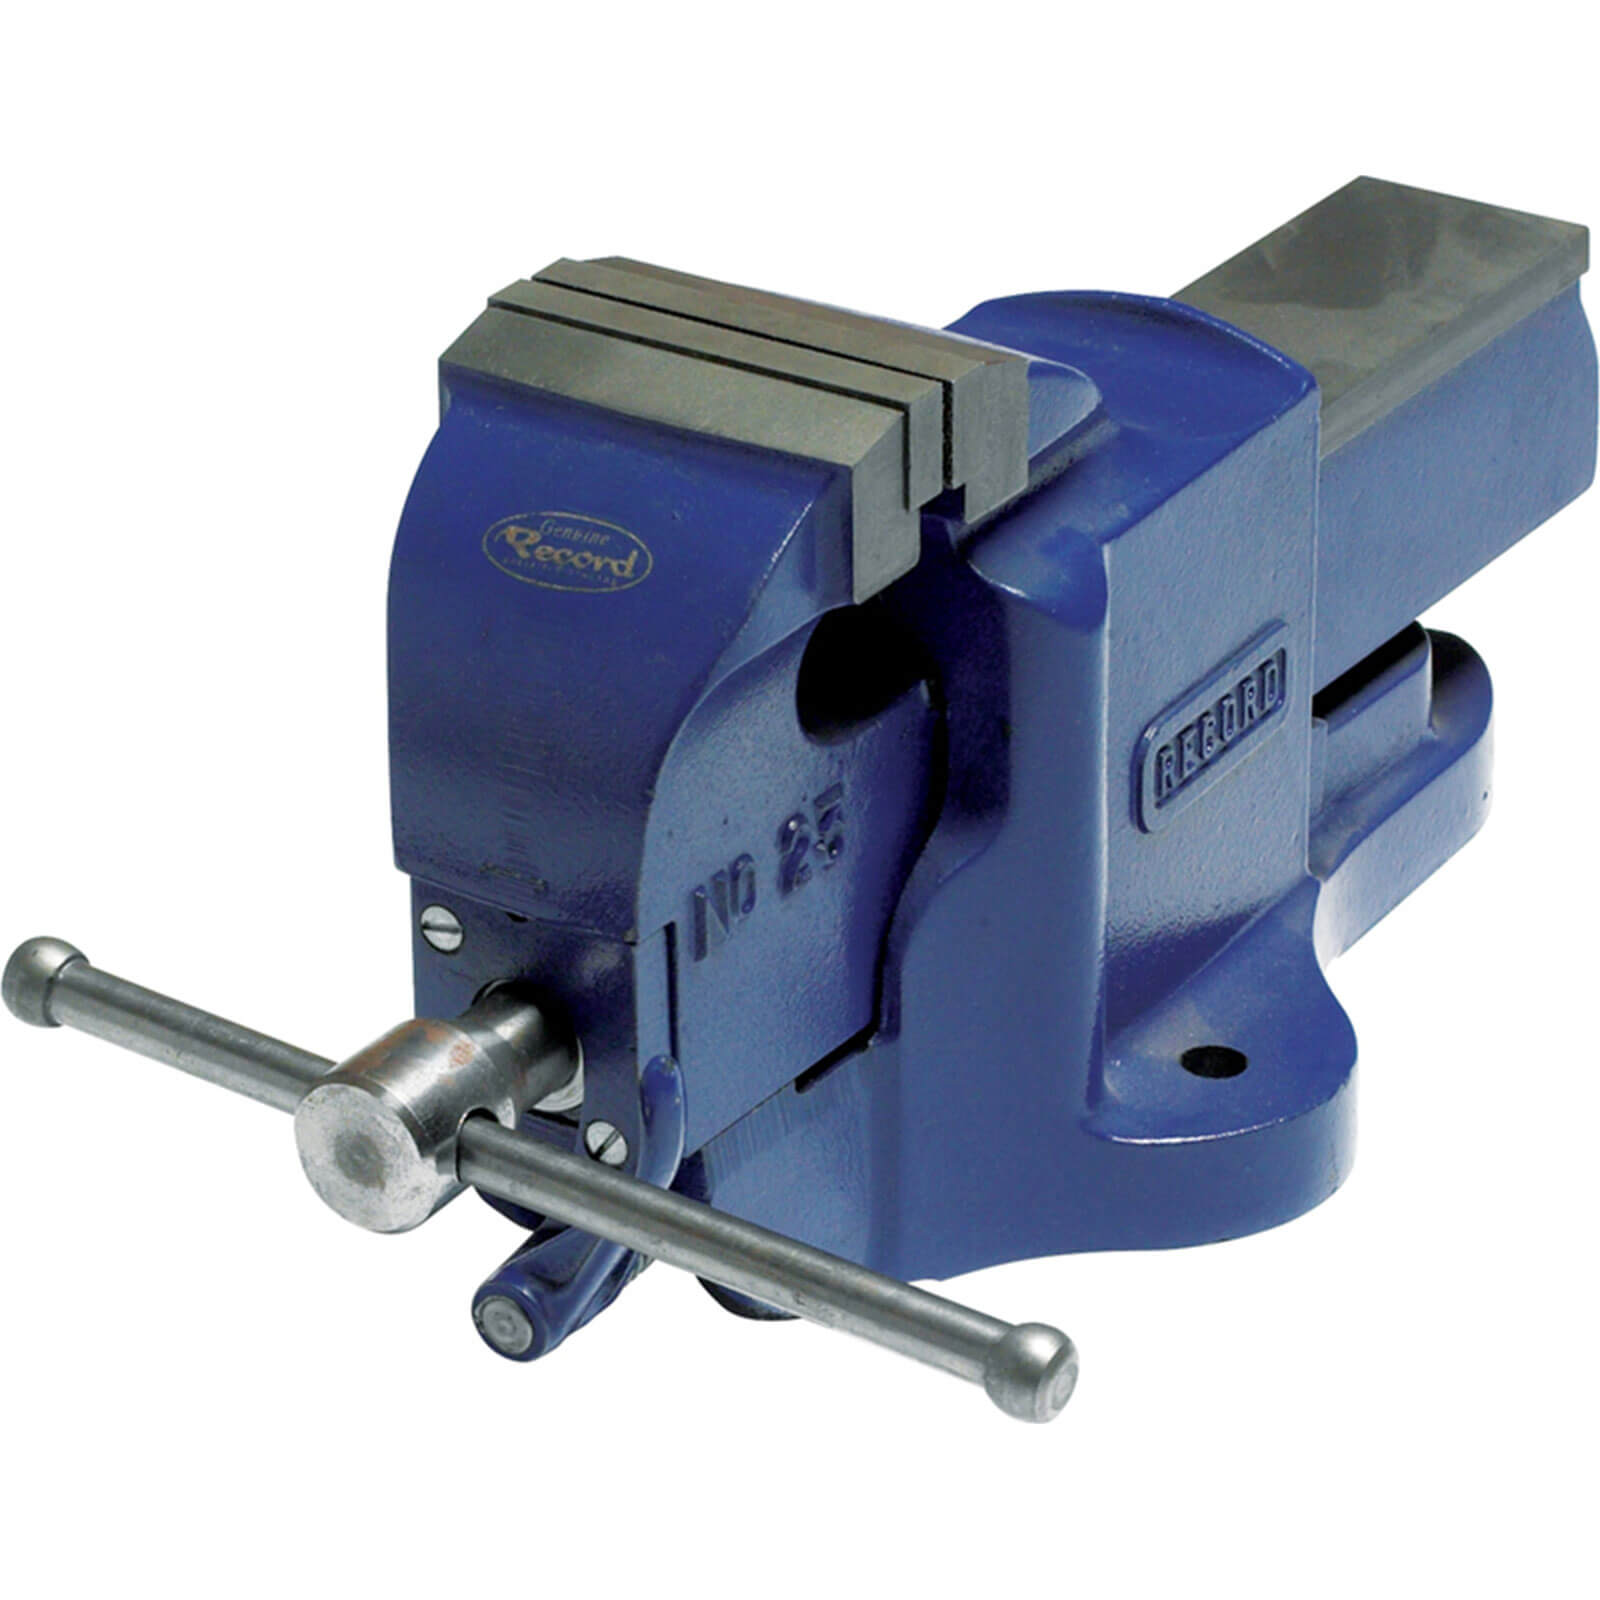 Image of Irwin Record Fitters Vice 150mm